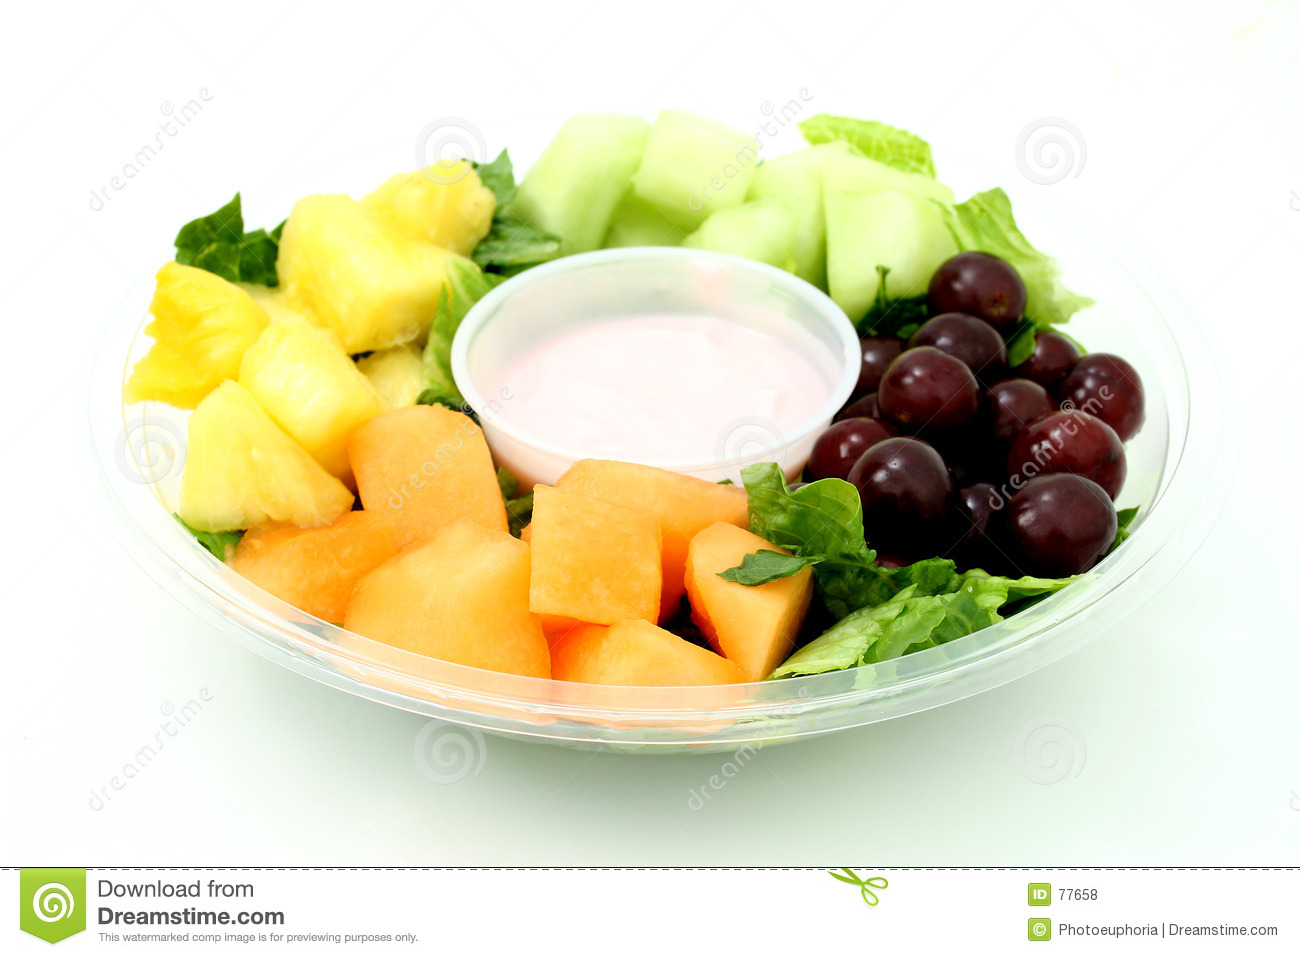 Vase Flowers Bouquet Daffodils 94360 likewise Stock Photos Canadian Bacon Pineapple Hawaiian Style Pizza Image24353913 in addition Royalty Free Stock Photos Small Fruit Tray Yogurt Image77658 likewise Stock Images Gmo Fruit Ge ic Modification Image23366554 moreover 5 Treasures Phuket. on pineapple vector 2